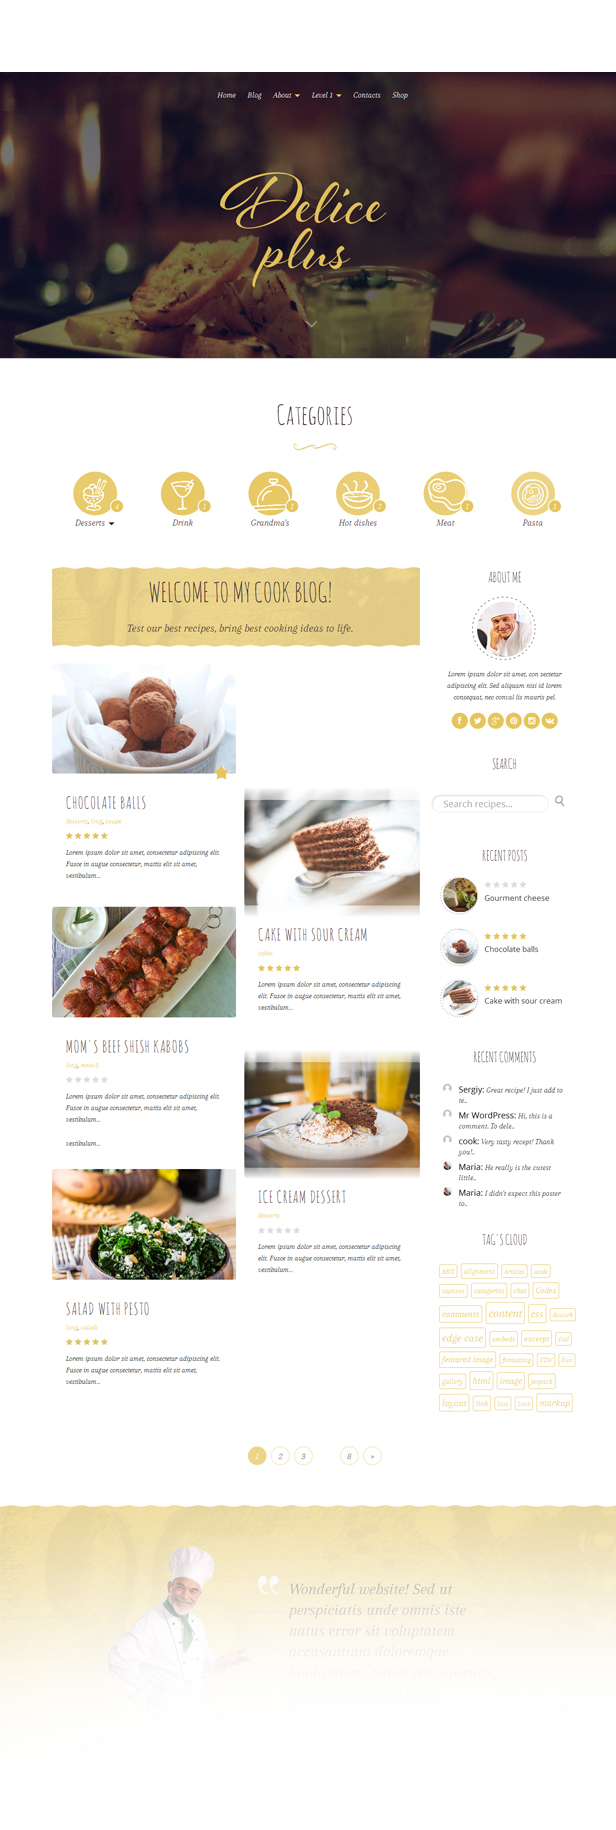 Delice Plus Cooking or Crafting WP Theme • by CookPress - 3